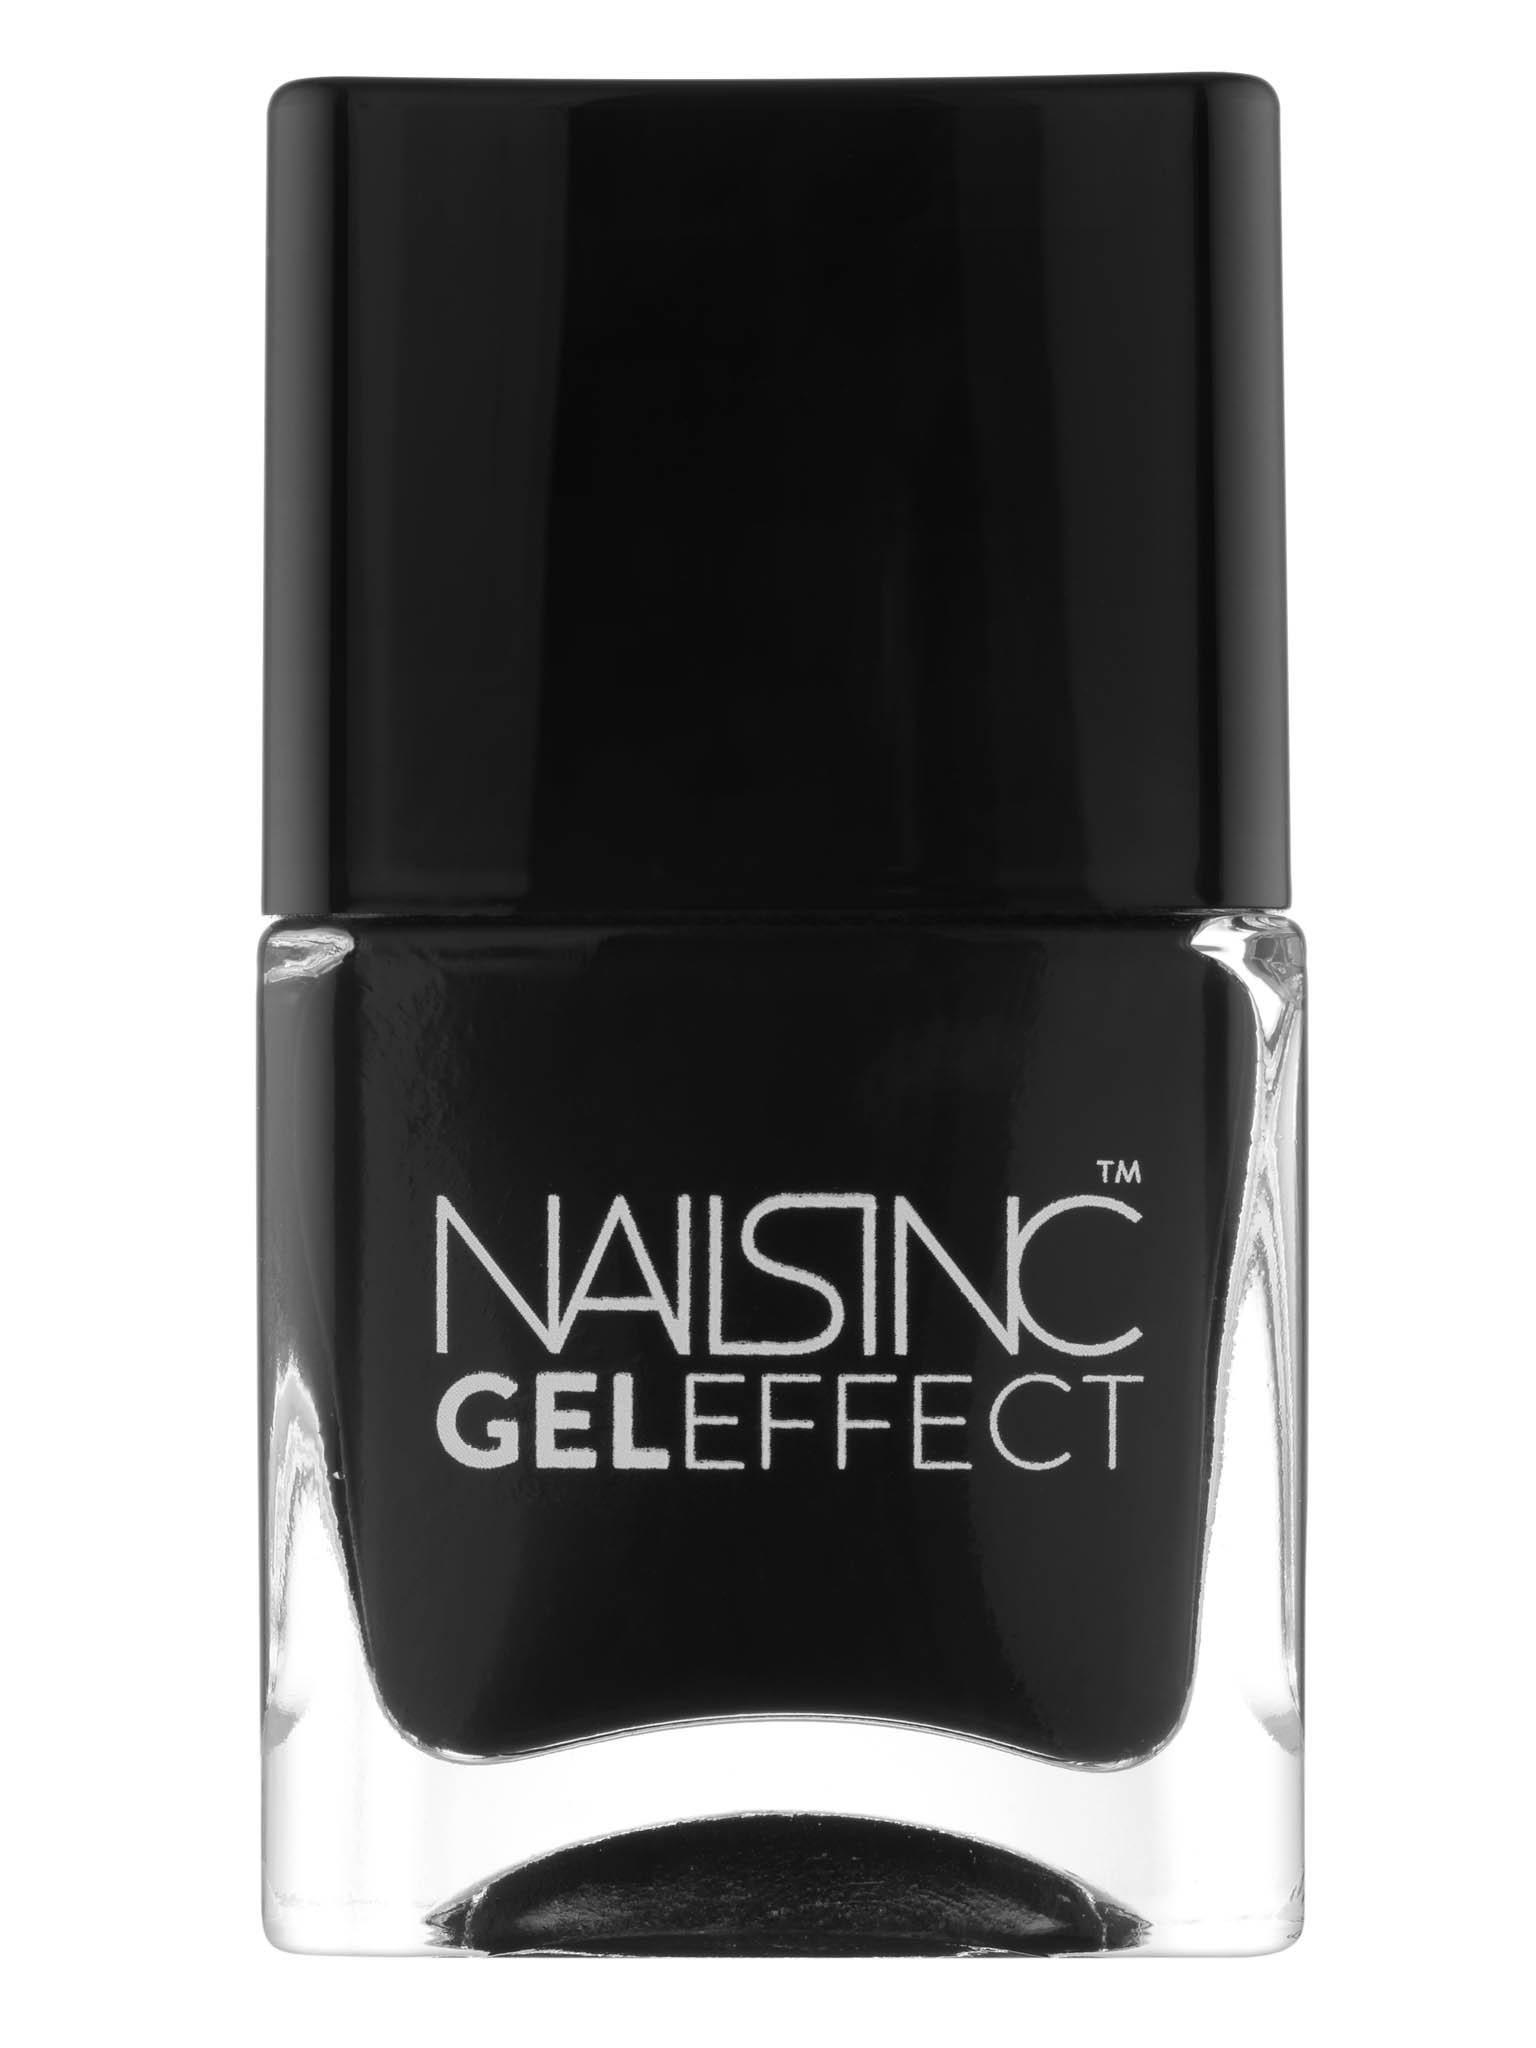 Moody mani: autumn/winter\'s best nail trend is deliciously dark ...